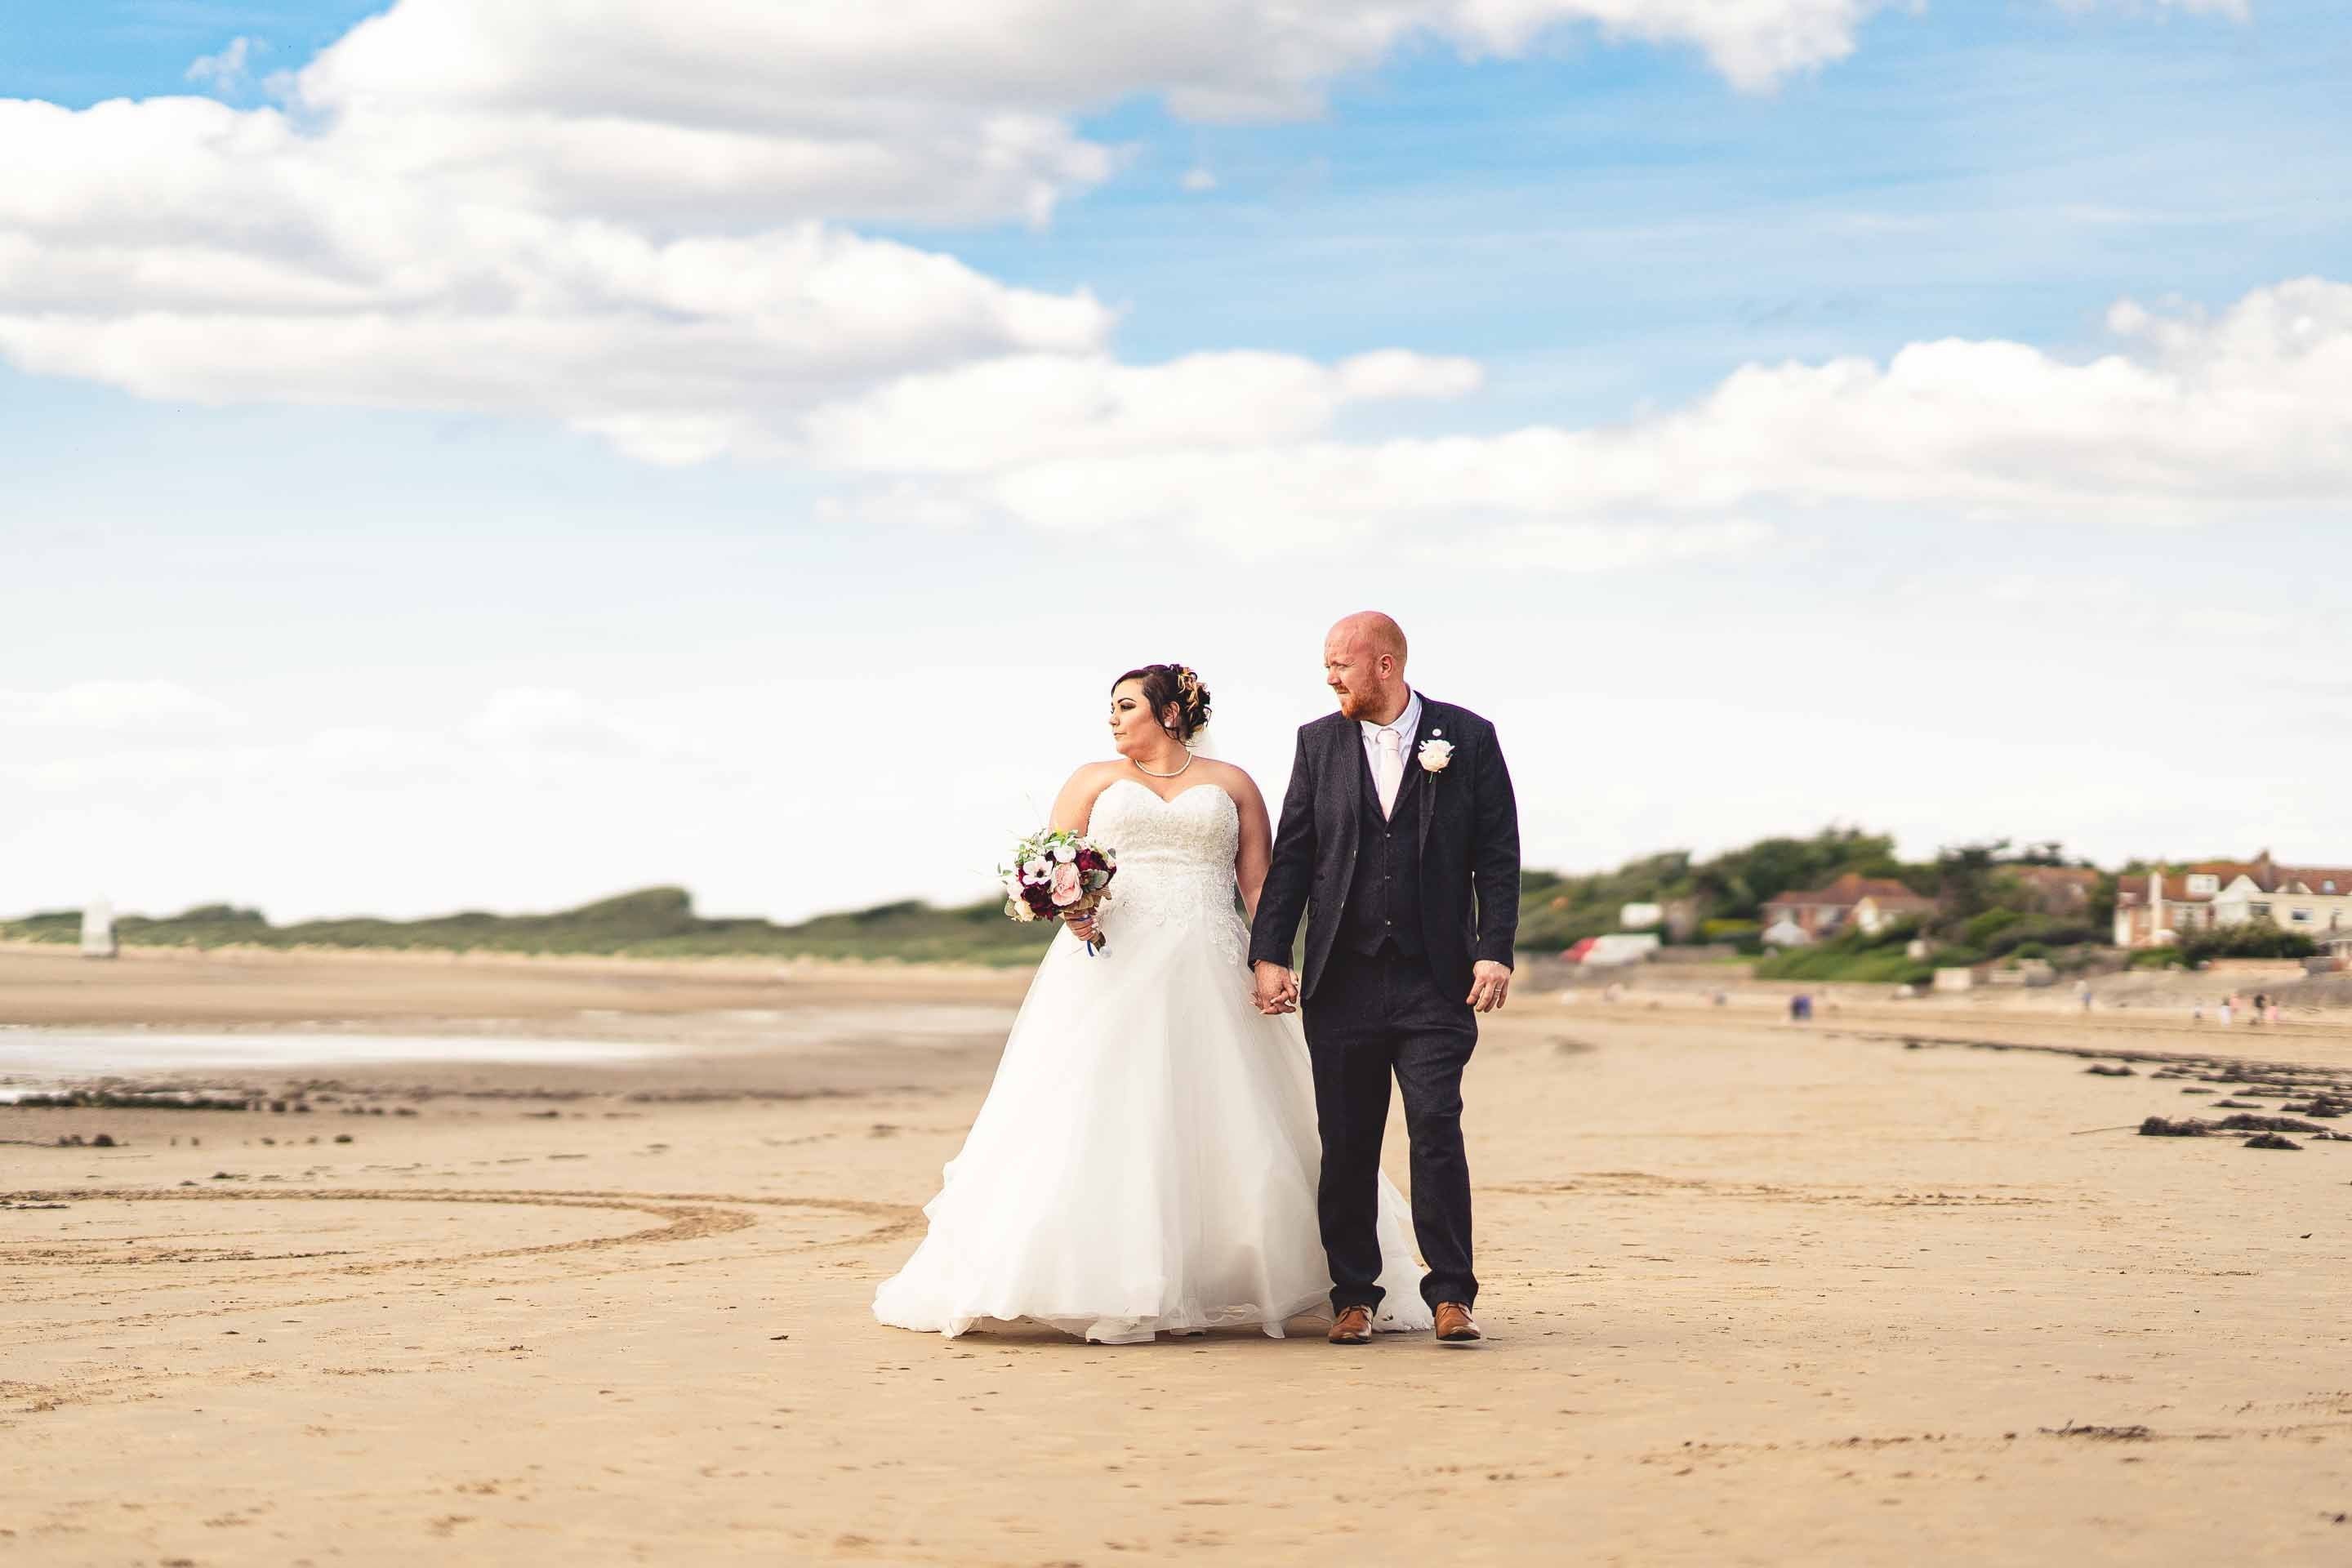 L&L-Olliemweddings.com-73